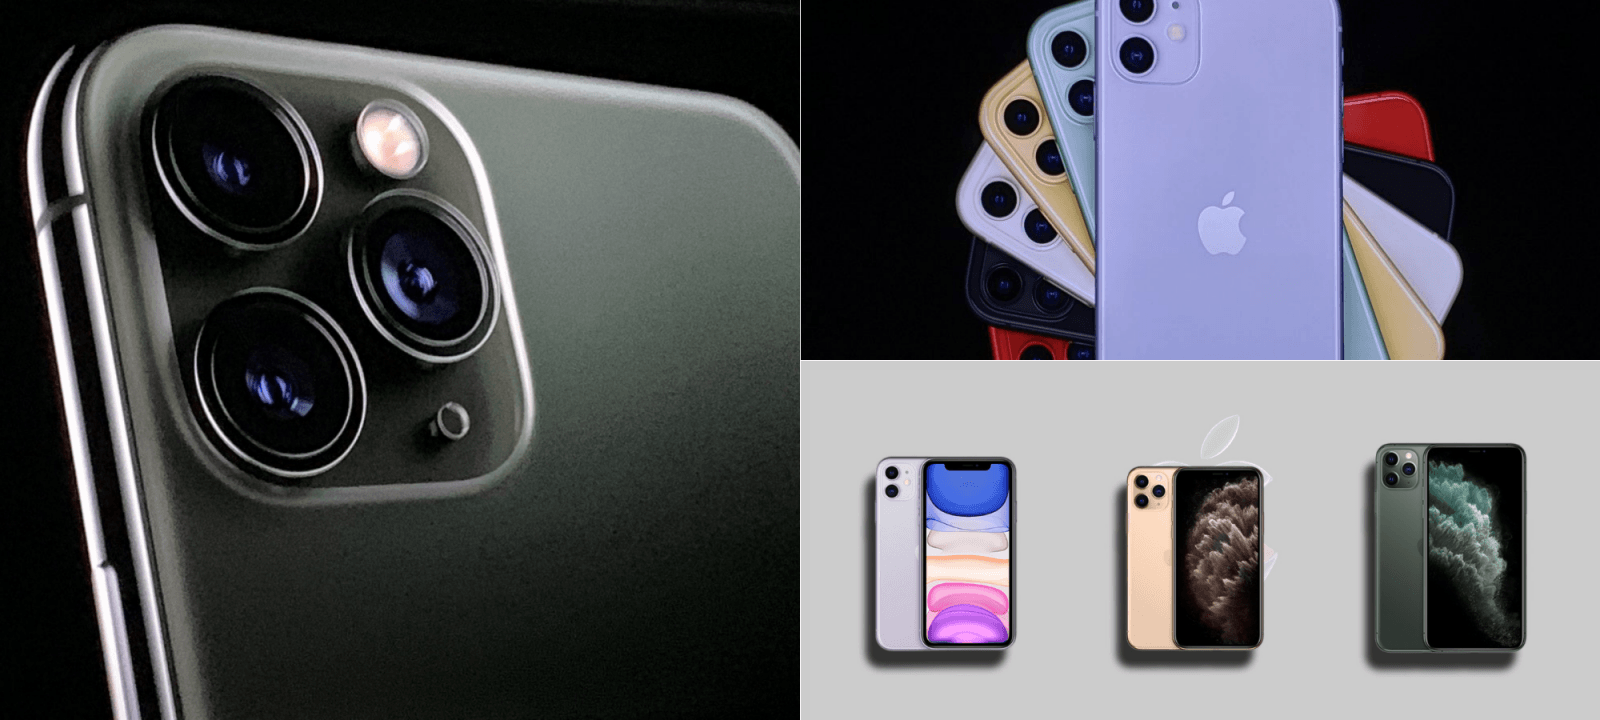 The Waiting Game is Over, Apple Announces the New iPhone 11